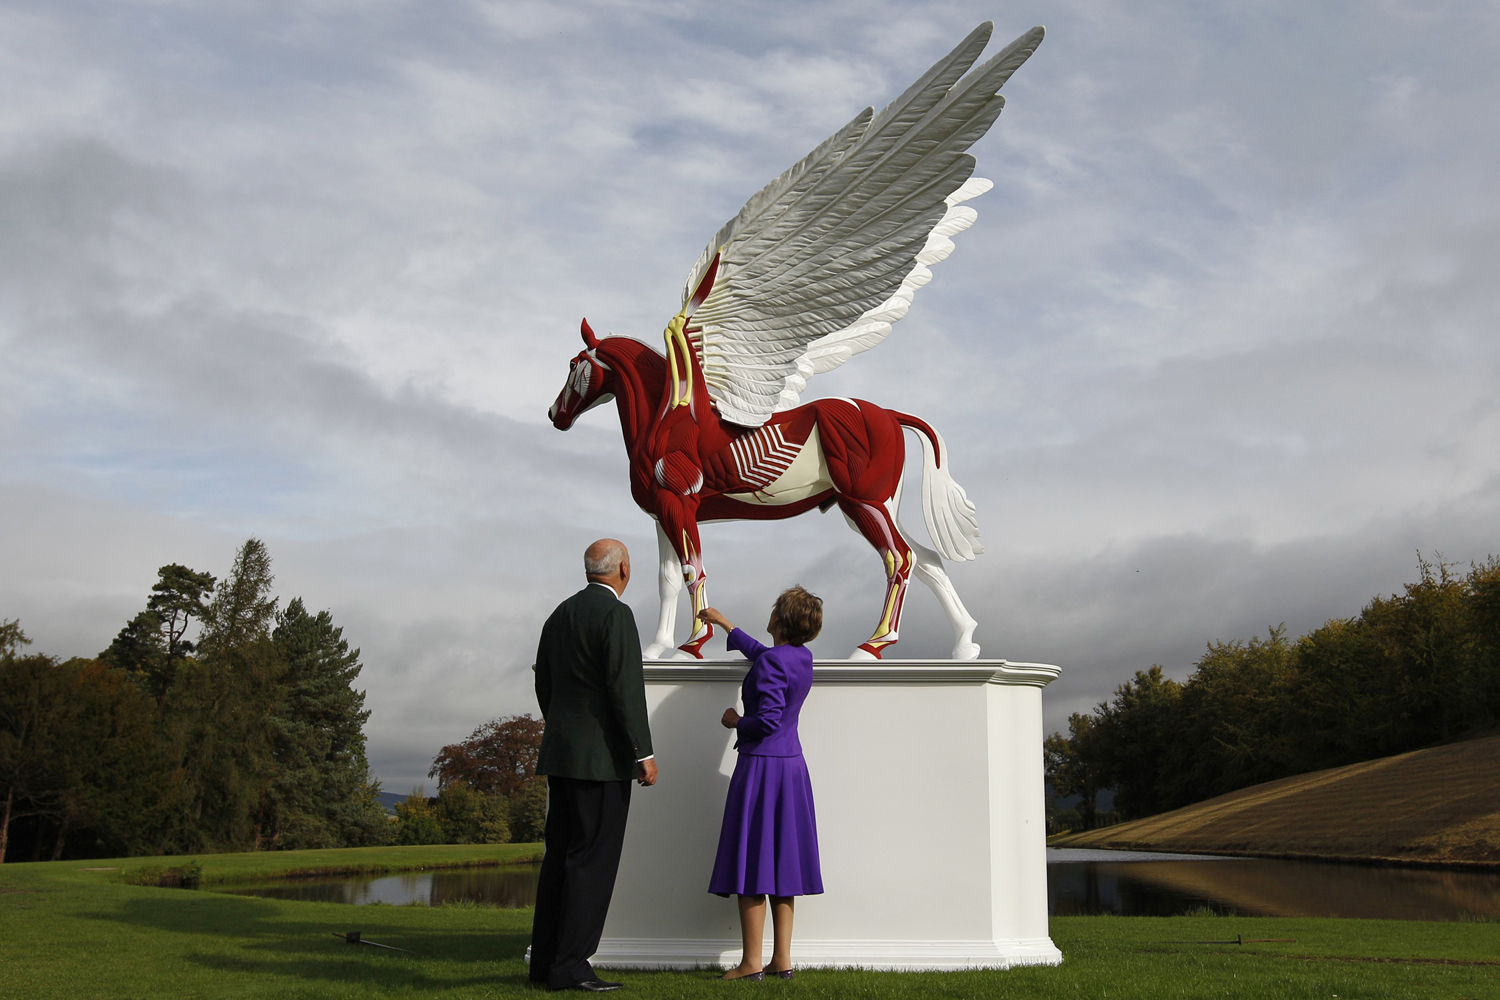 September 9, 2011. The Duke and Duchess of Devonshire view the sculpture Legend by Damien Hirst in the gardens of their home Chatsworth House in central England. The work is part of the Beyond Limits exhibition of modern and contemporary sculpture displayed in the gardens.